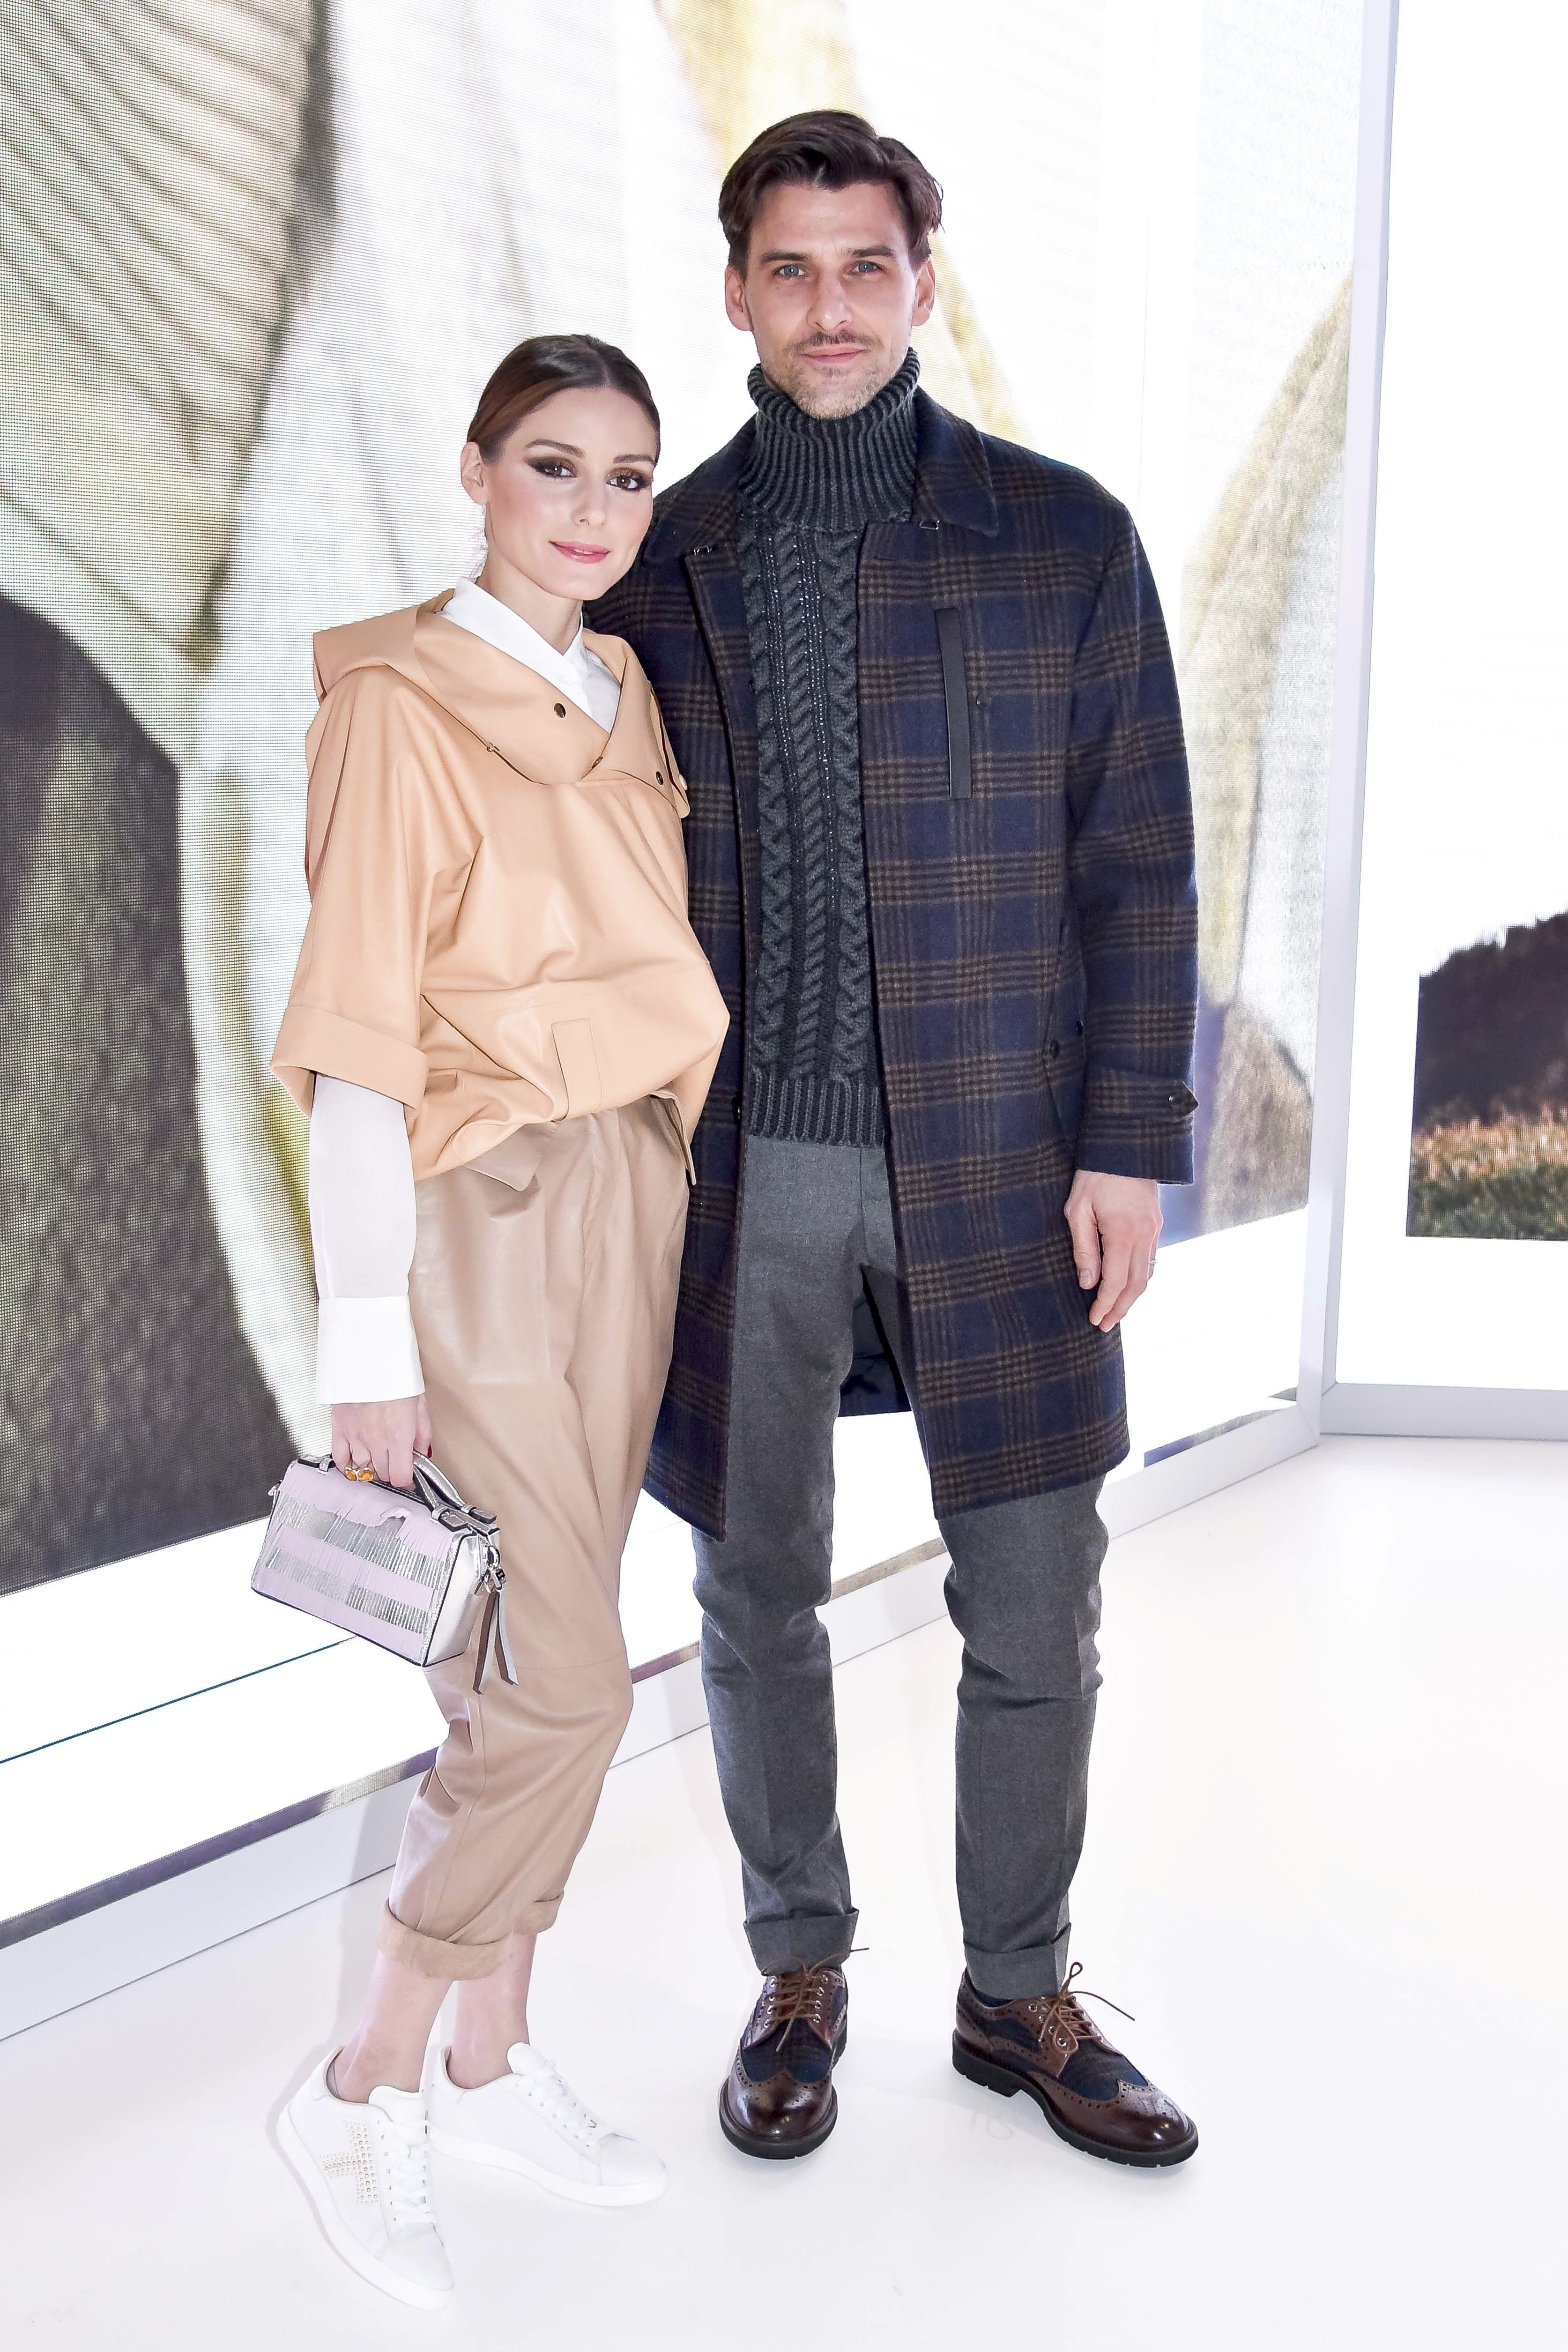 Olivia Palermo and Johannes Huebl pose for a quick photo before sitting front row for the Tod's Ready to Wear Fall Winter 2018 Fashion Show in Milan. February 23, 2018 X17online.com USA ONLY